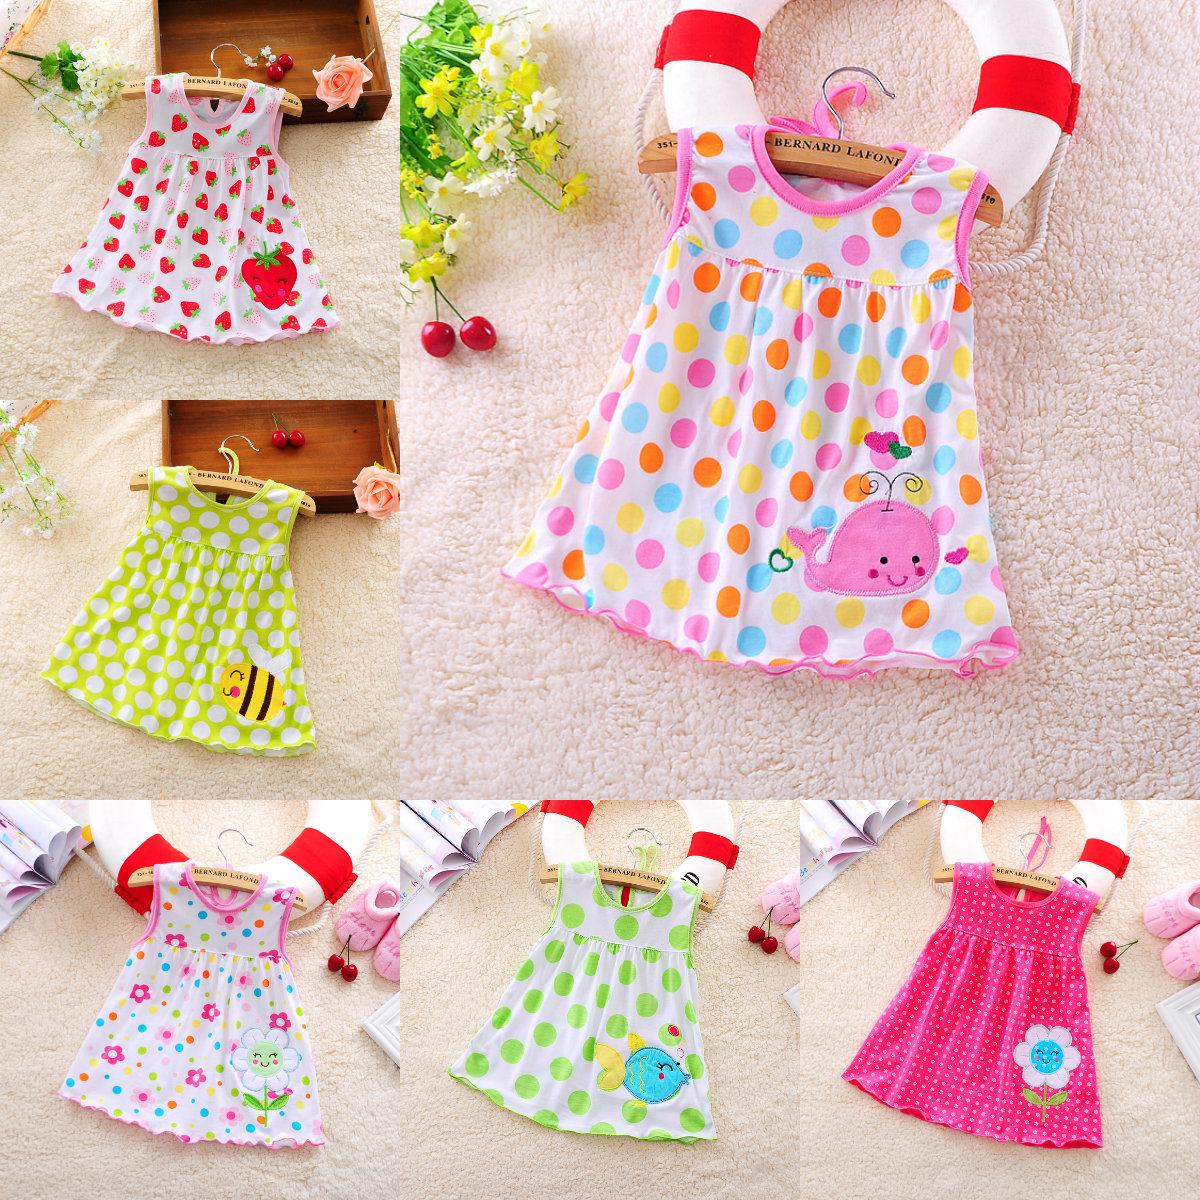 Summer Infant Baby Girls Pure Cotton Colorful Dress Embroidered Sleeveless Princess Dress Cute Casual Girls Clothes 0-24 Months